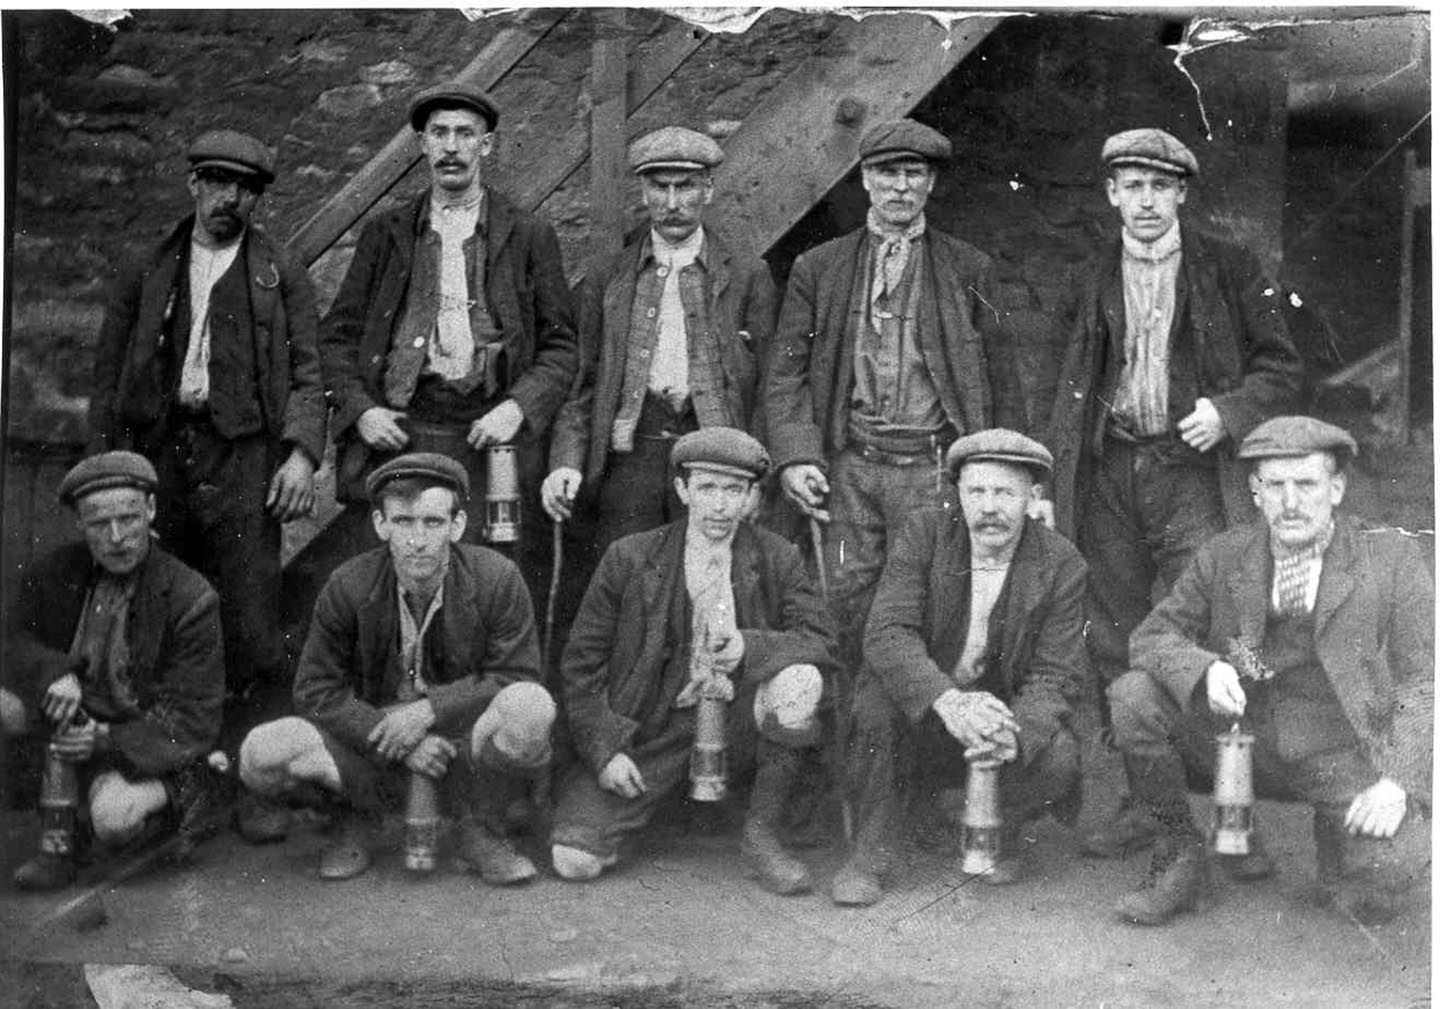 Real Vintage Clothing: Factories And Workers